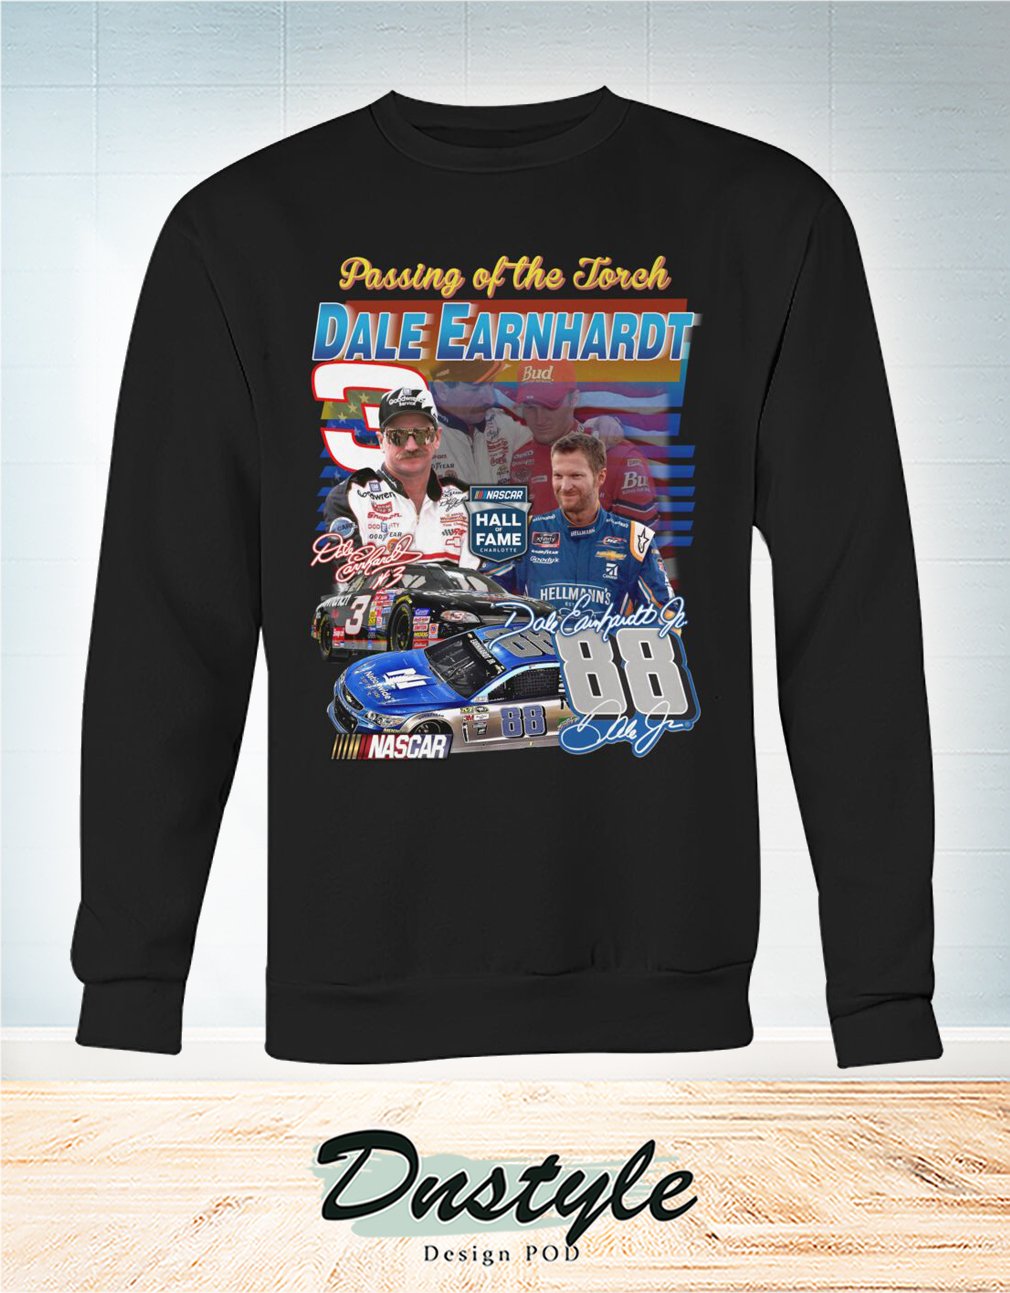 Passing of the forch Dale Earnhardt signature sweatshirt